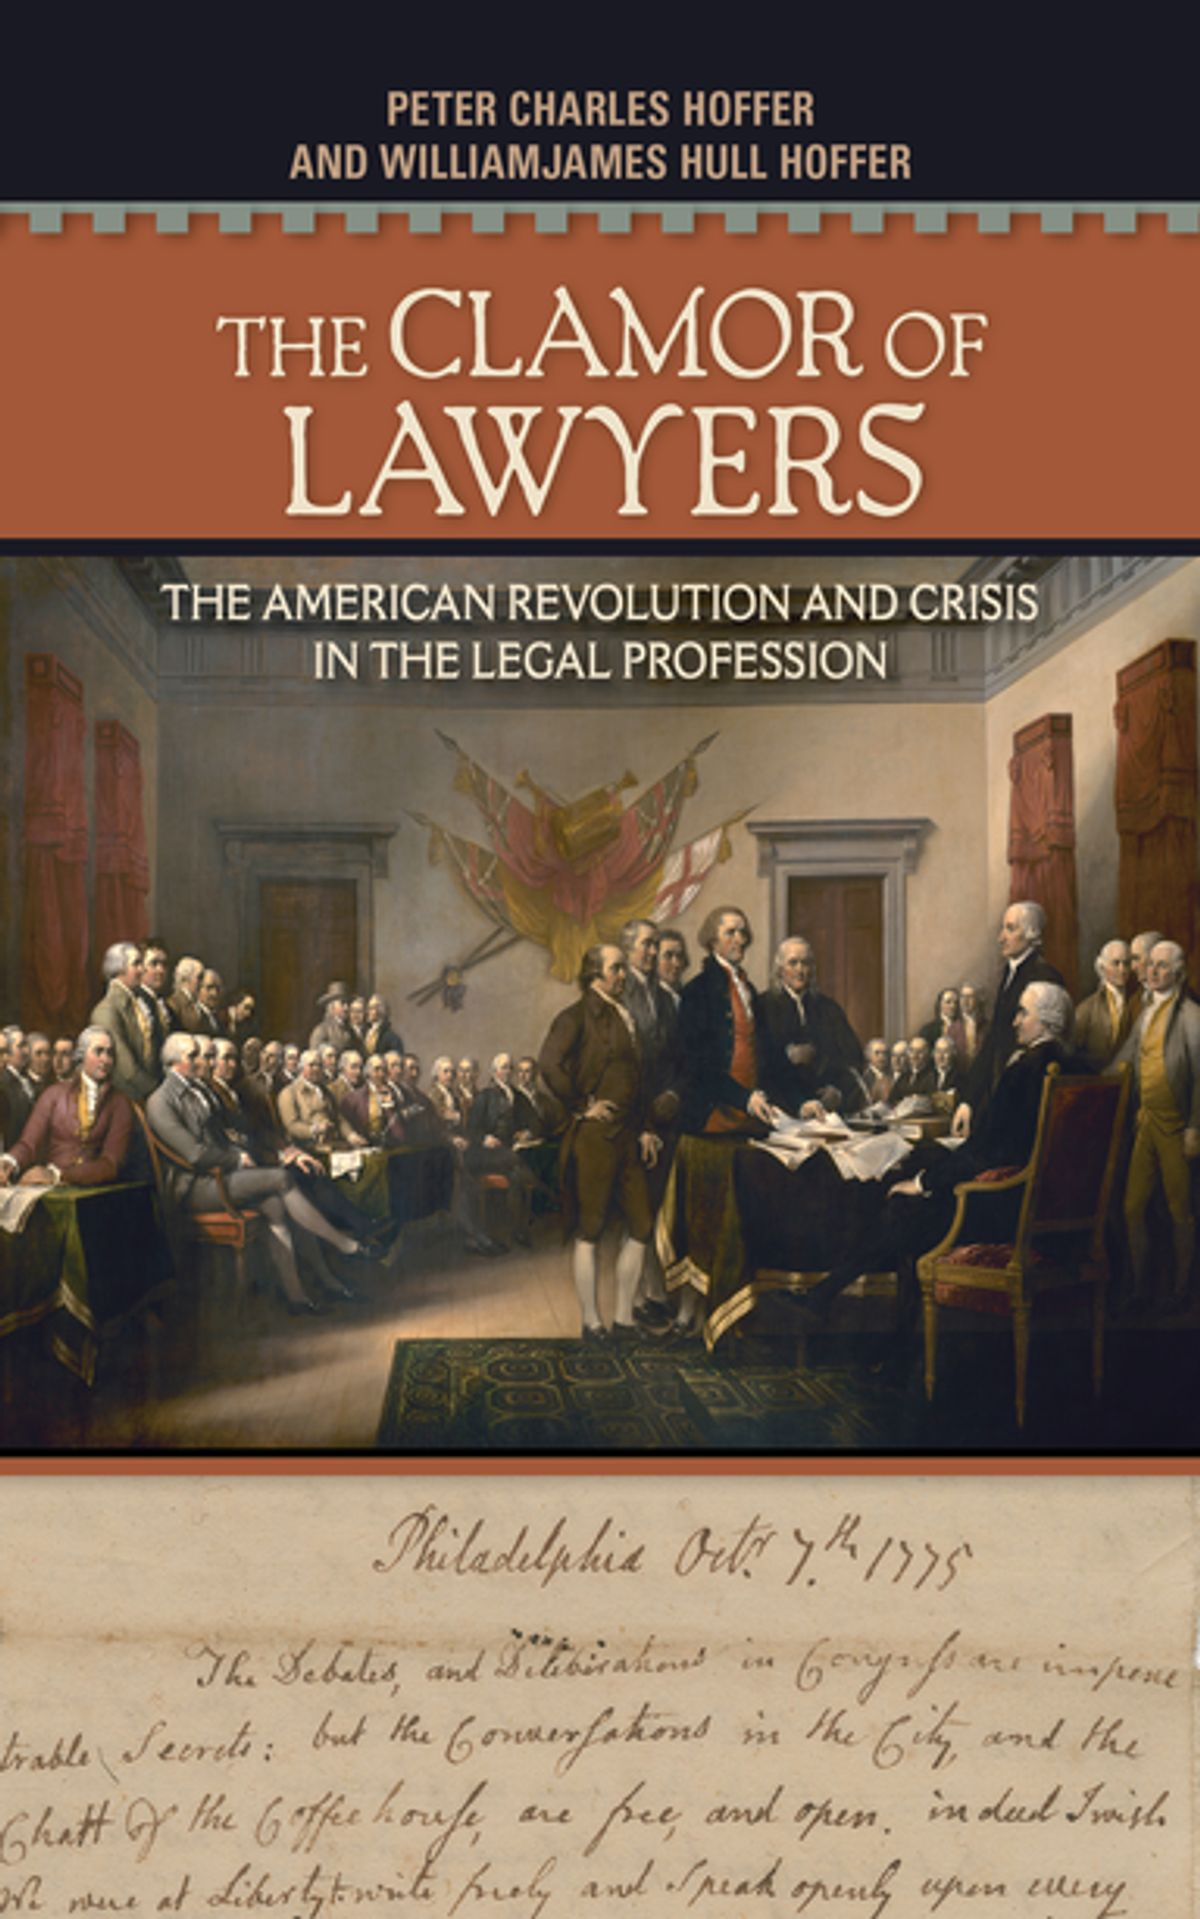 Cover image of The Clamor of Lawyers: The American Revolution and Crisis in the Legal Profession